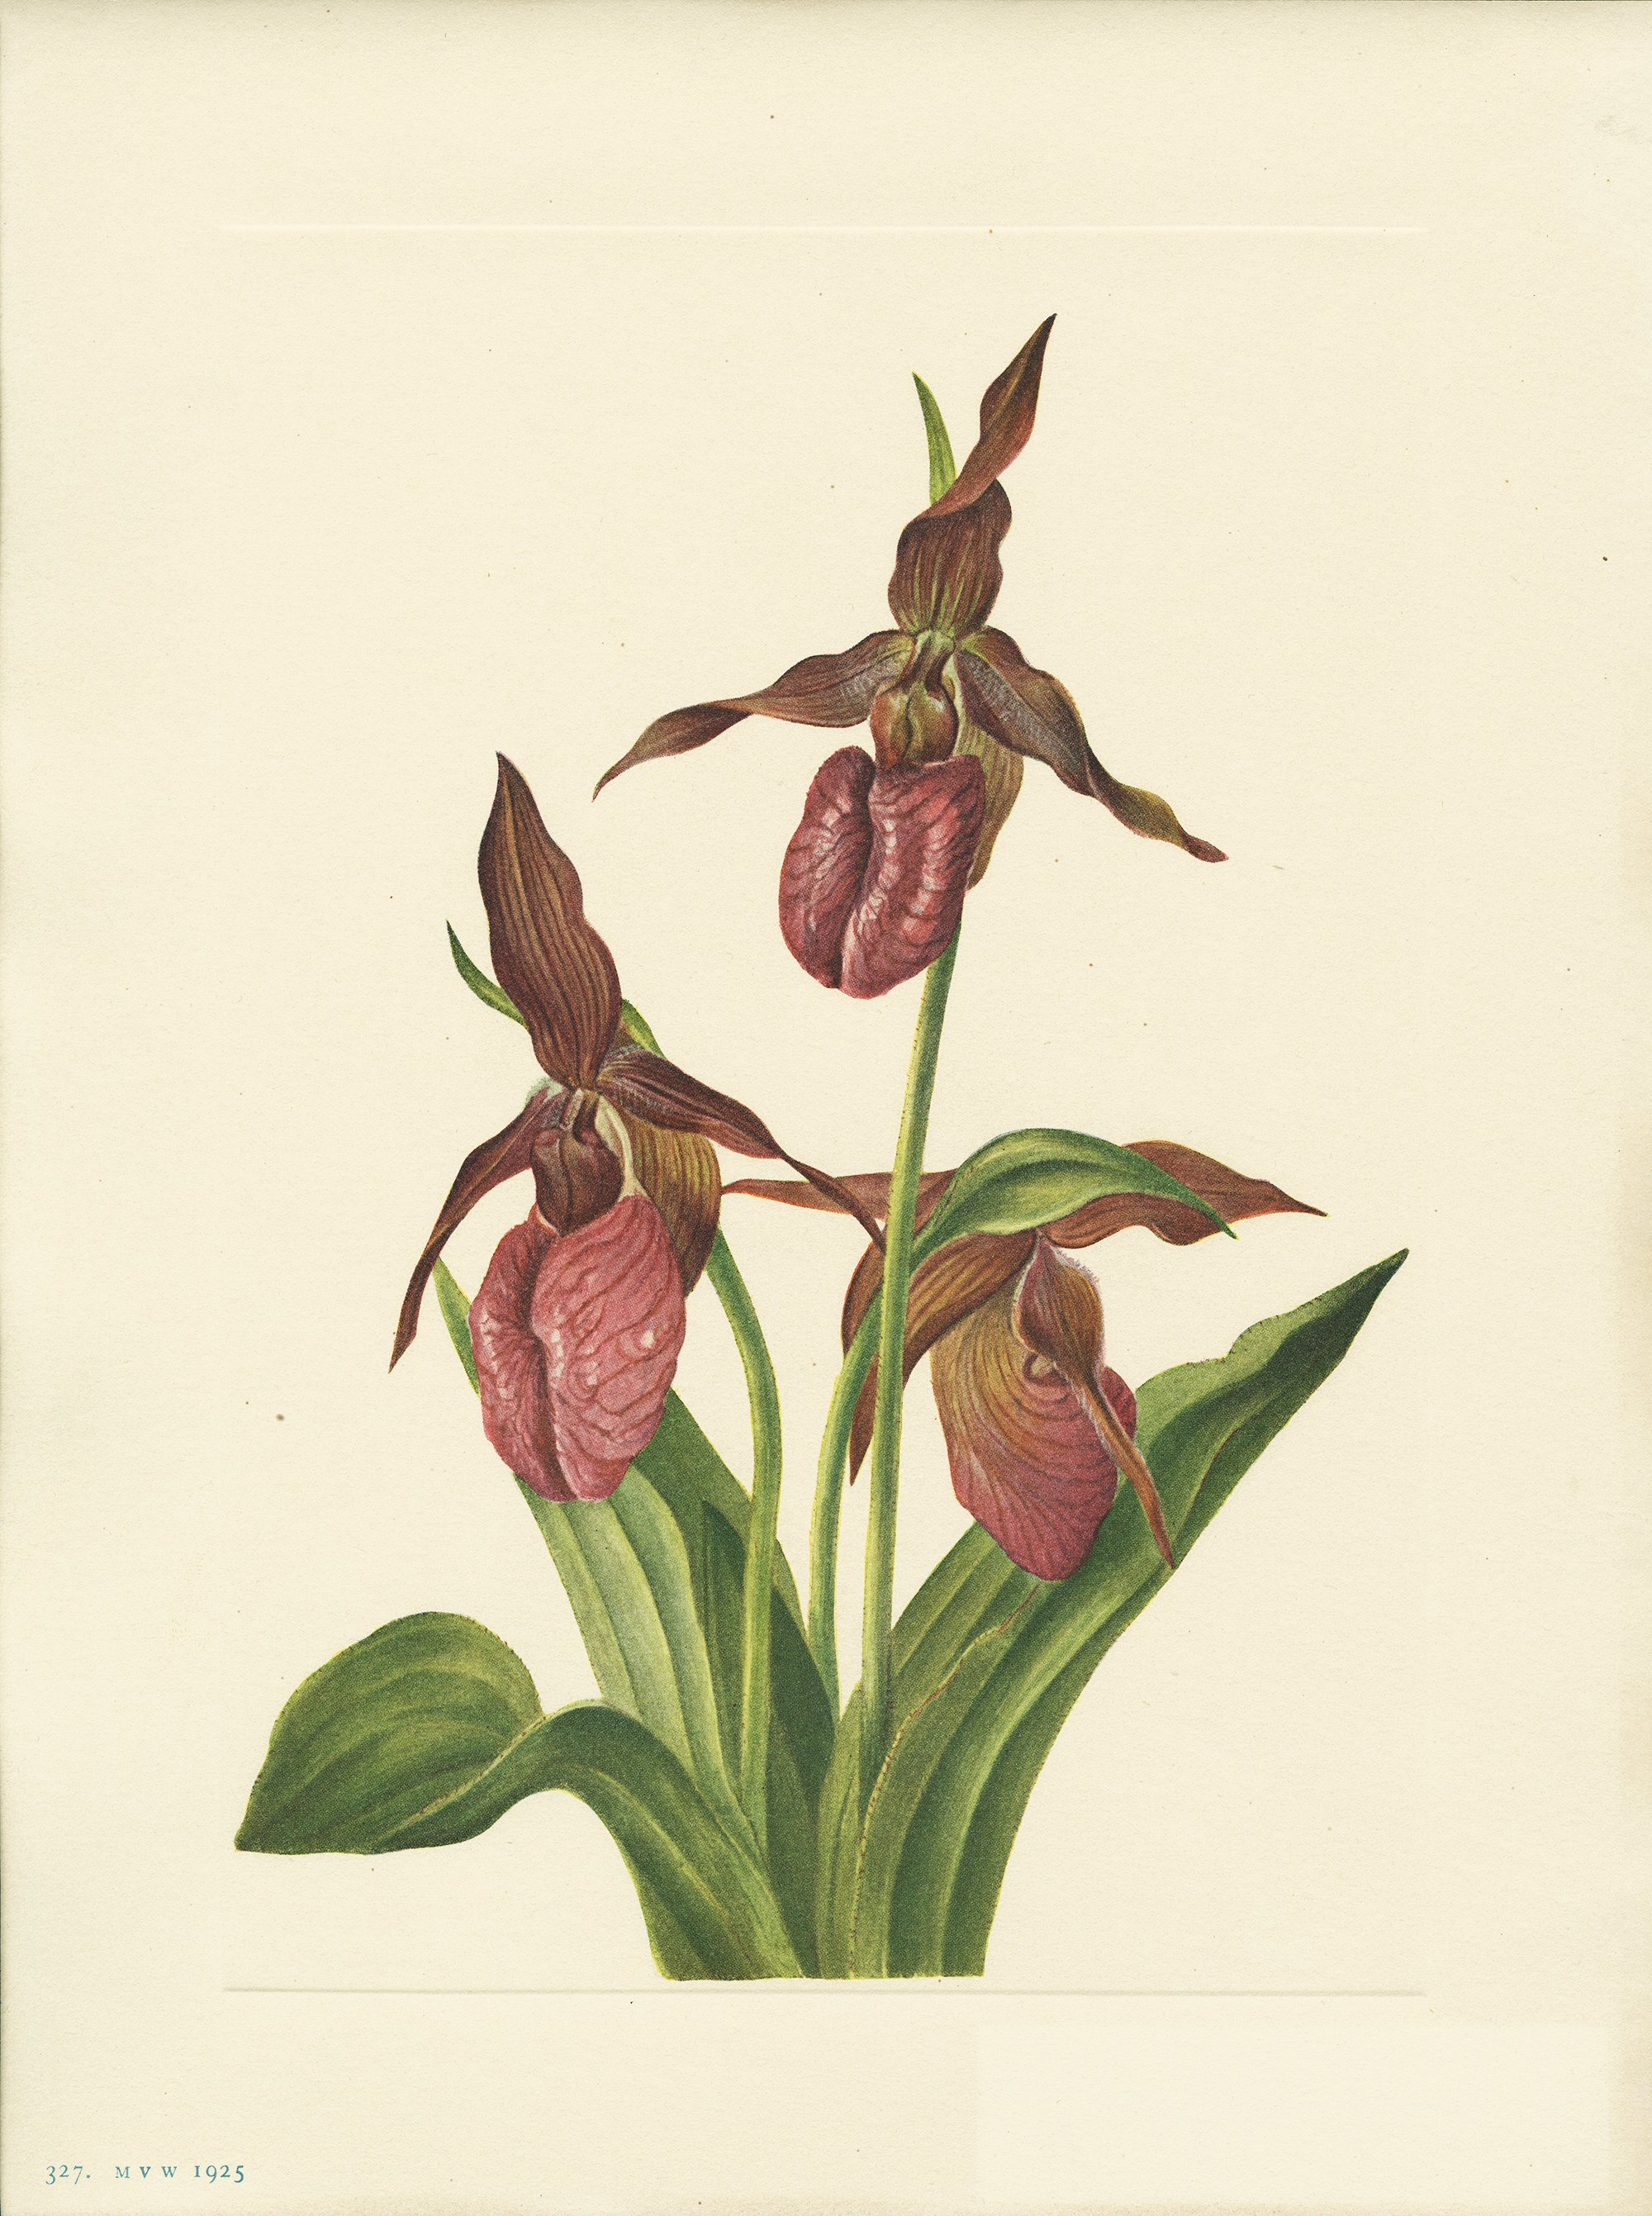 9f18a1a97 Cyfripedium acaule Aiton Pink ladyslipper, often called moccasin-flower, is  always a delight to the flower lover, for it seems like some exotic visitor.